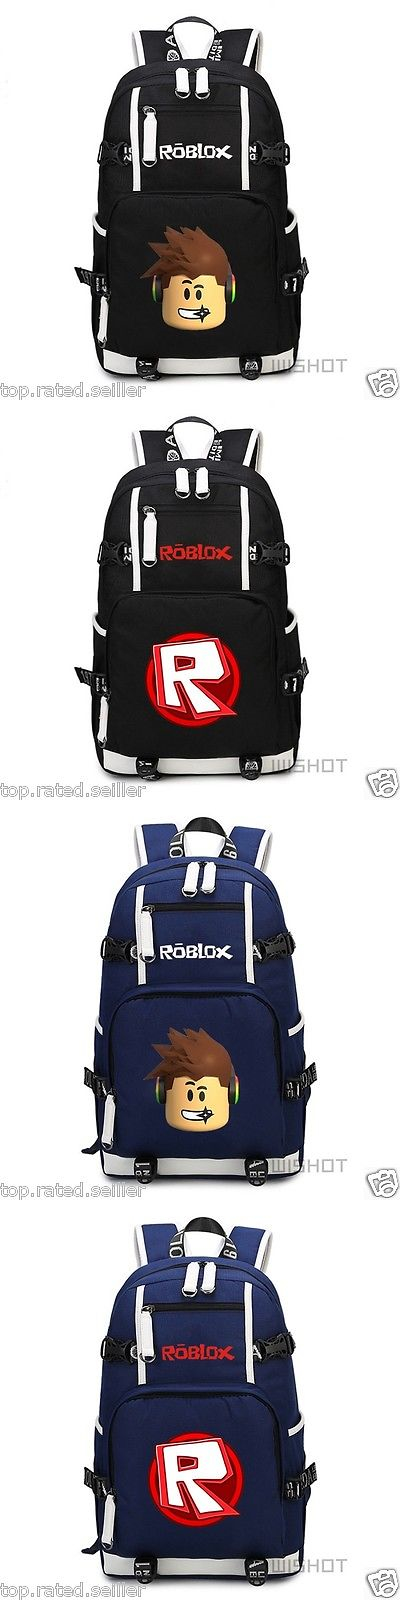 fb060944706 Backpacks and Bags 57882  New Roblox Game Backpack For Kids Boys Children  Teenagers Men Student School Bag -  BUY IT NOW ONLY   35.99 on eBay!